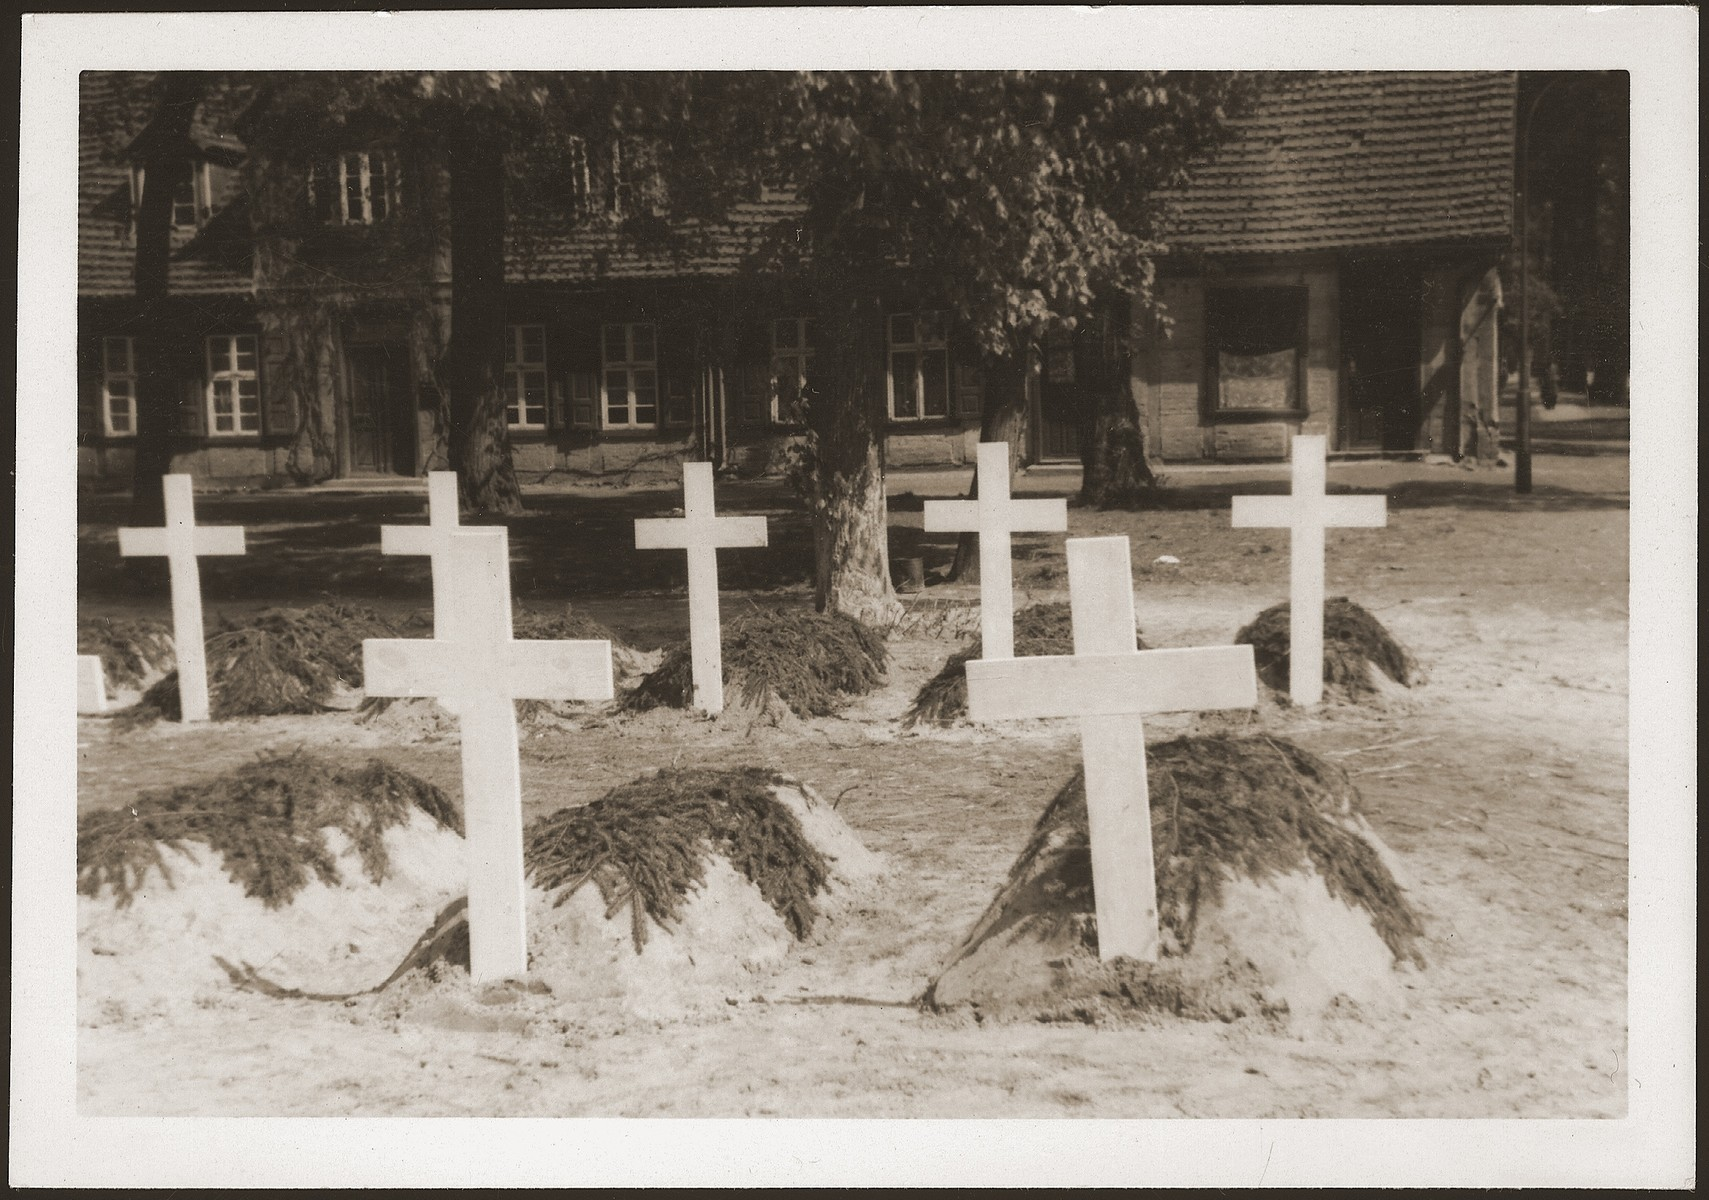 Large crosses mark the graves of prisoners from the Woebbelin concentration camp who were buried on the palace grounds of the Archduke of Mecklenburg in Ludwigslust.